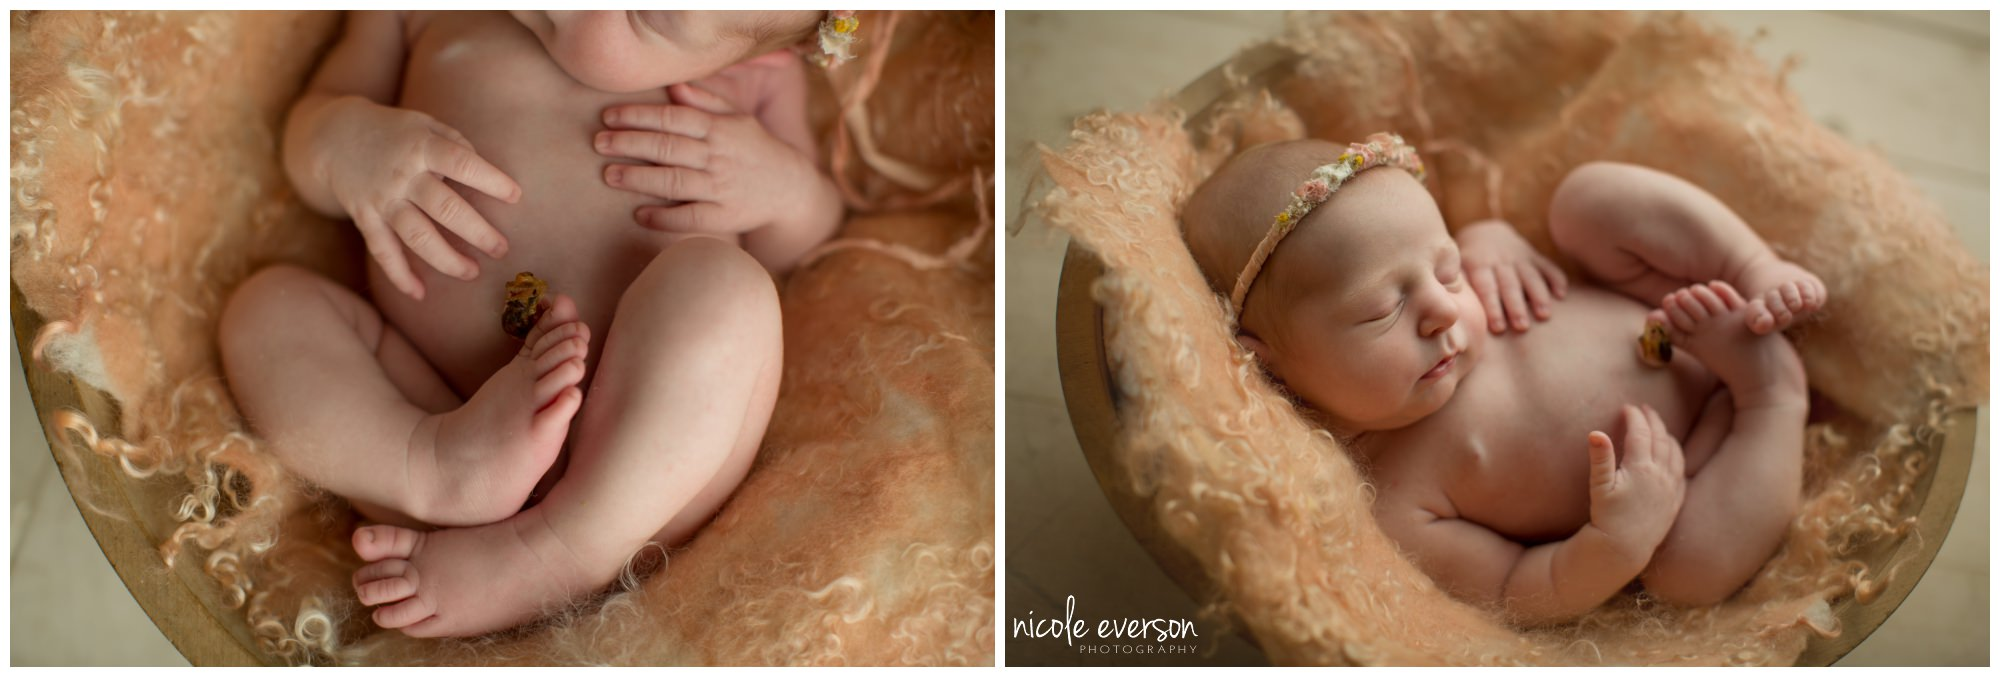 pictures of newborn babies